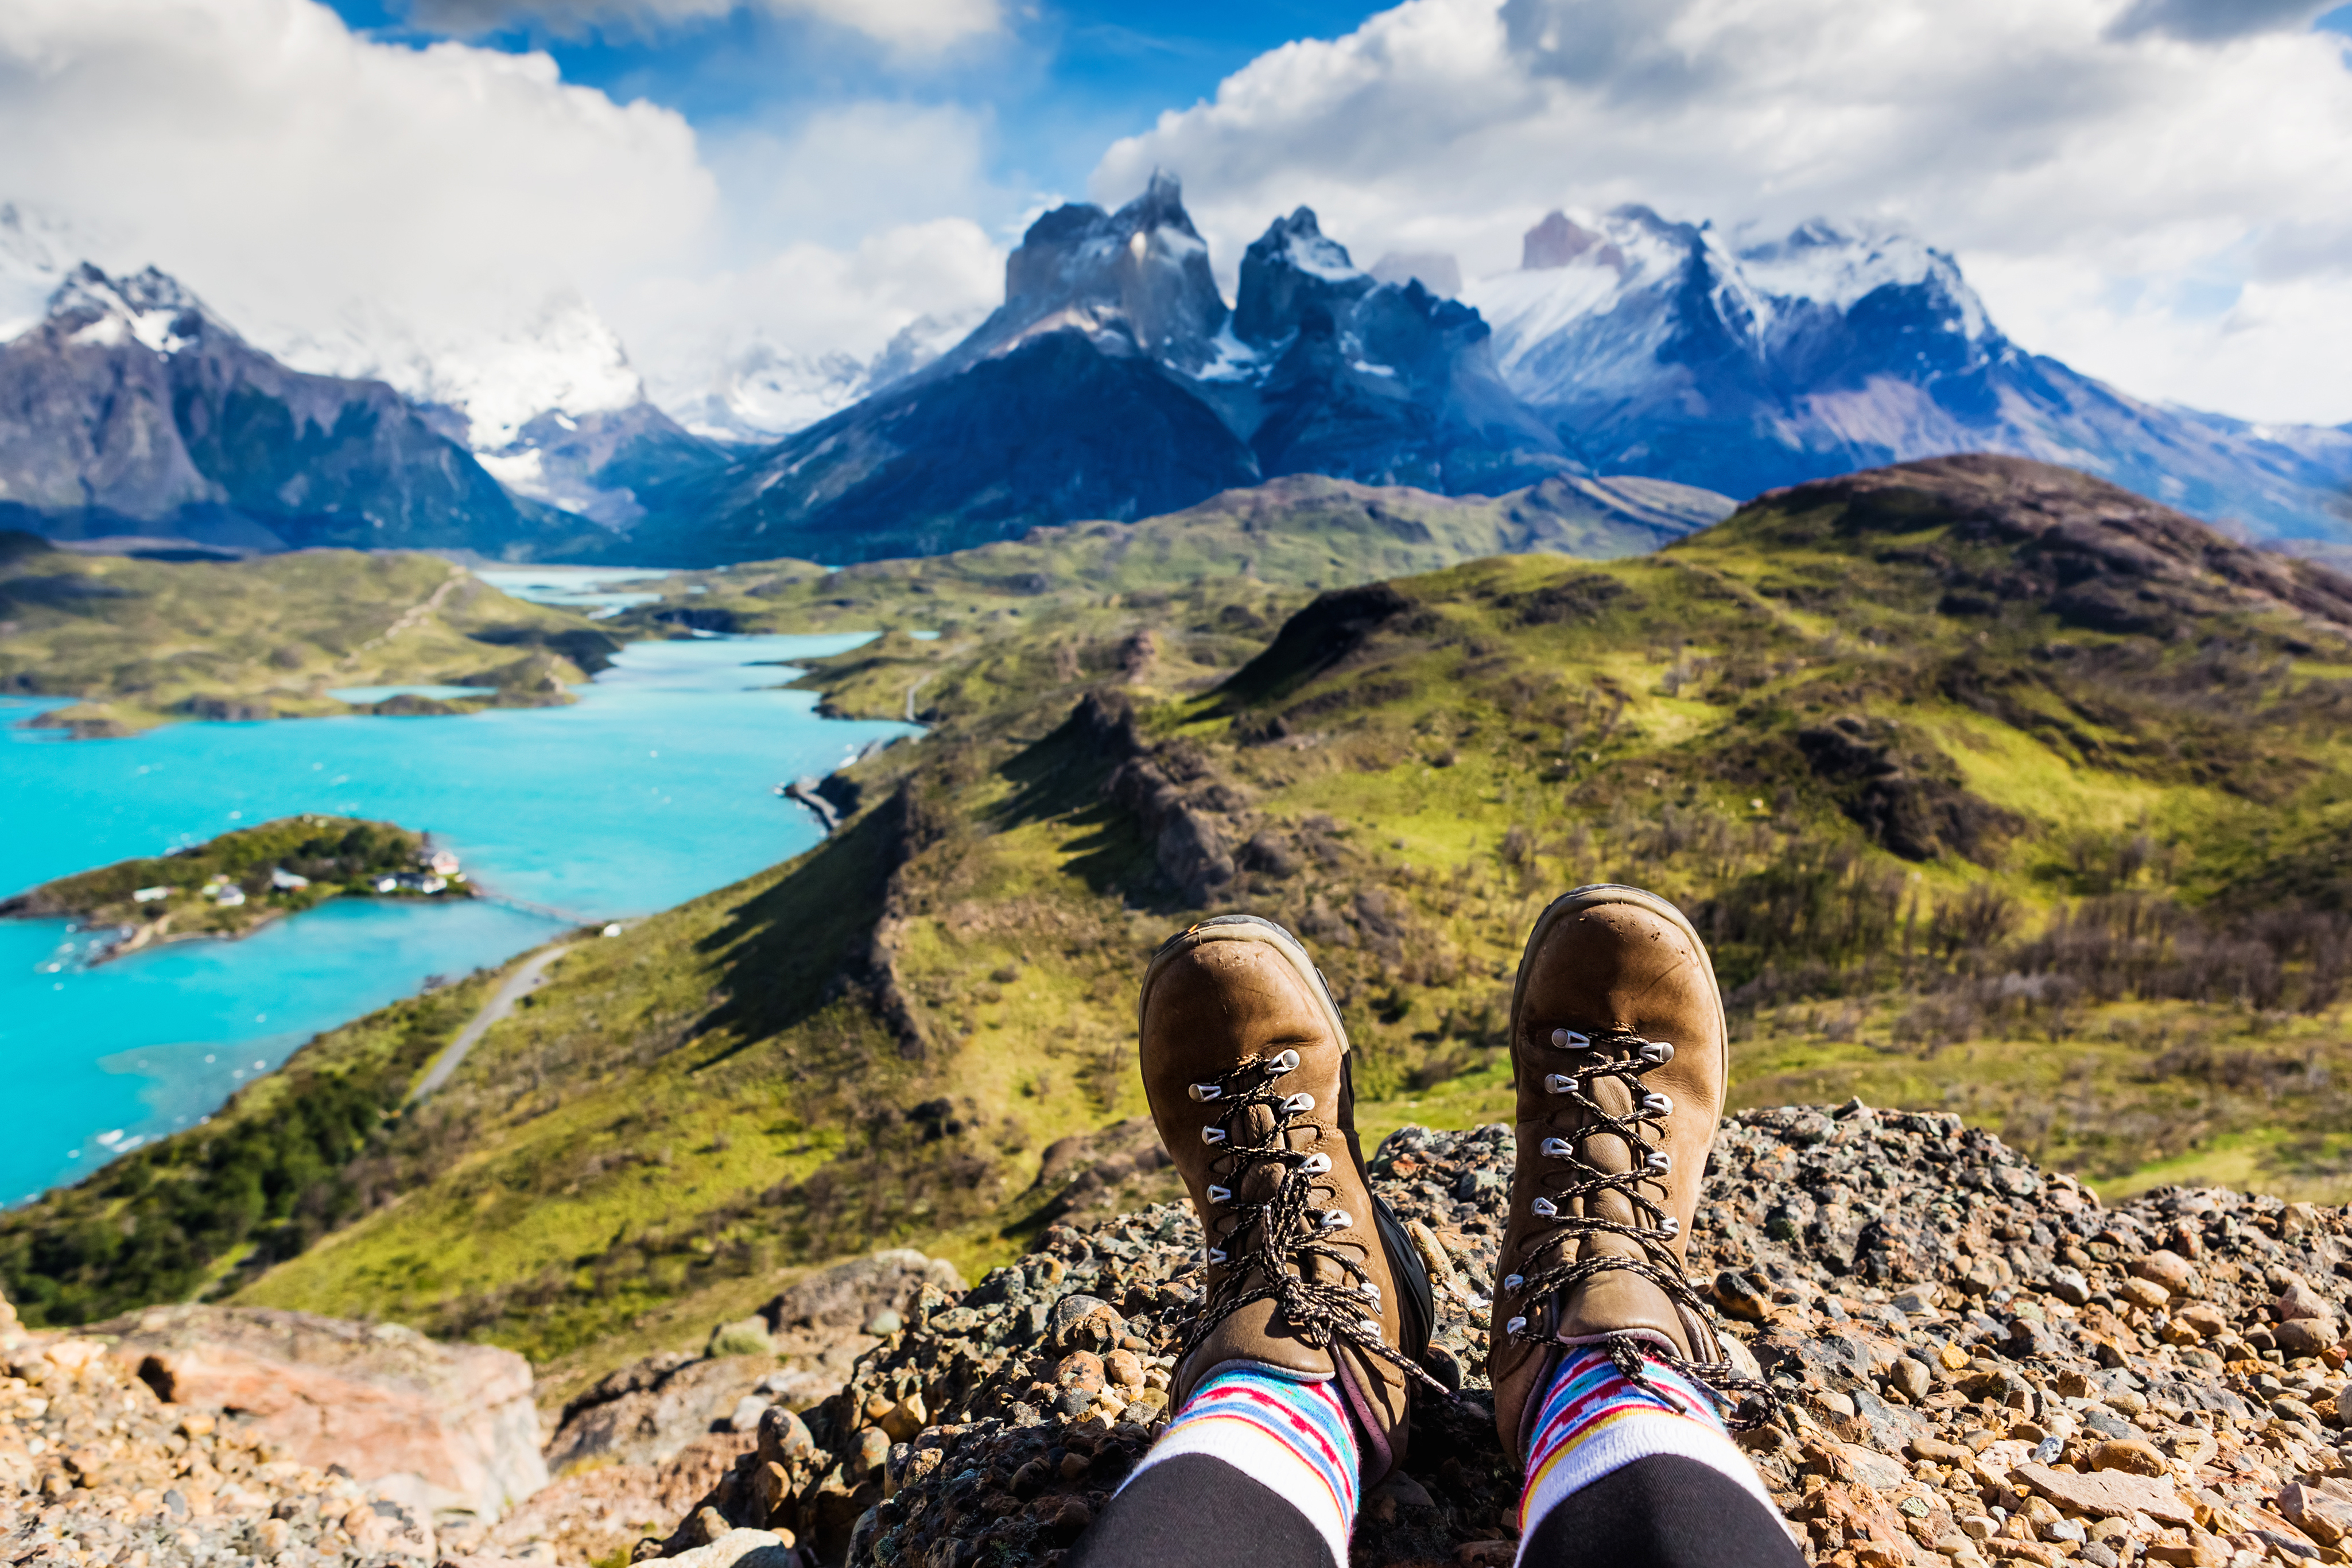 Study finds the outdoors boosts health